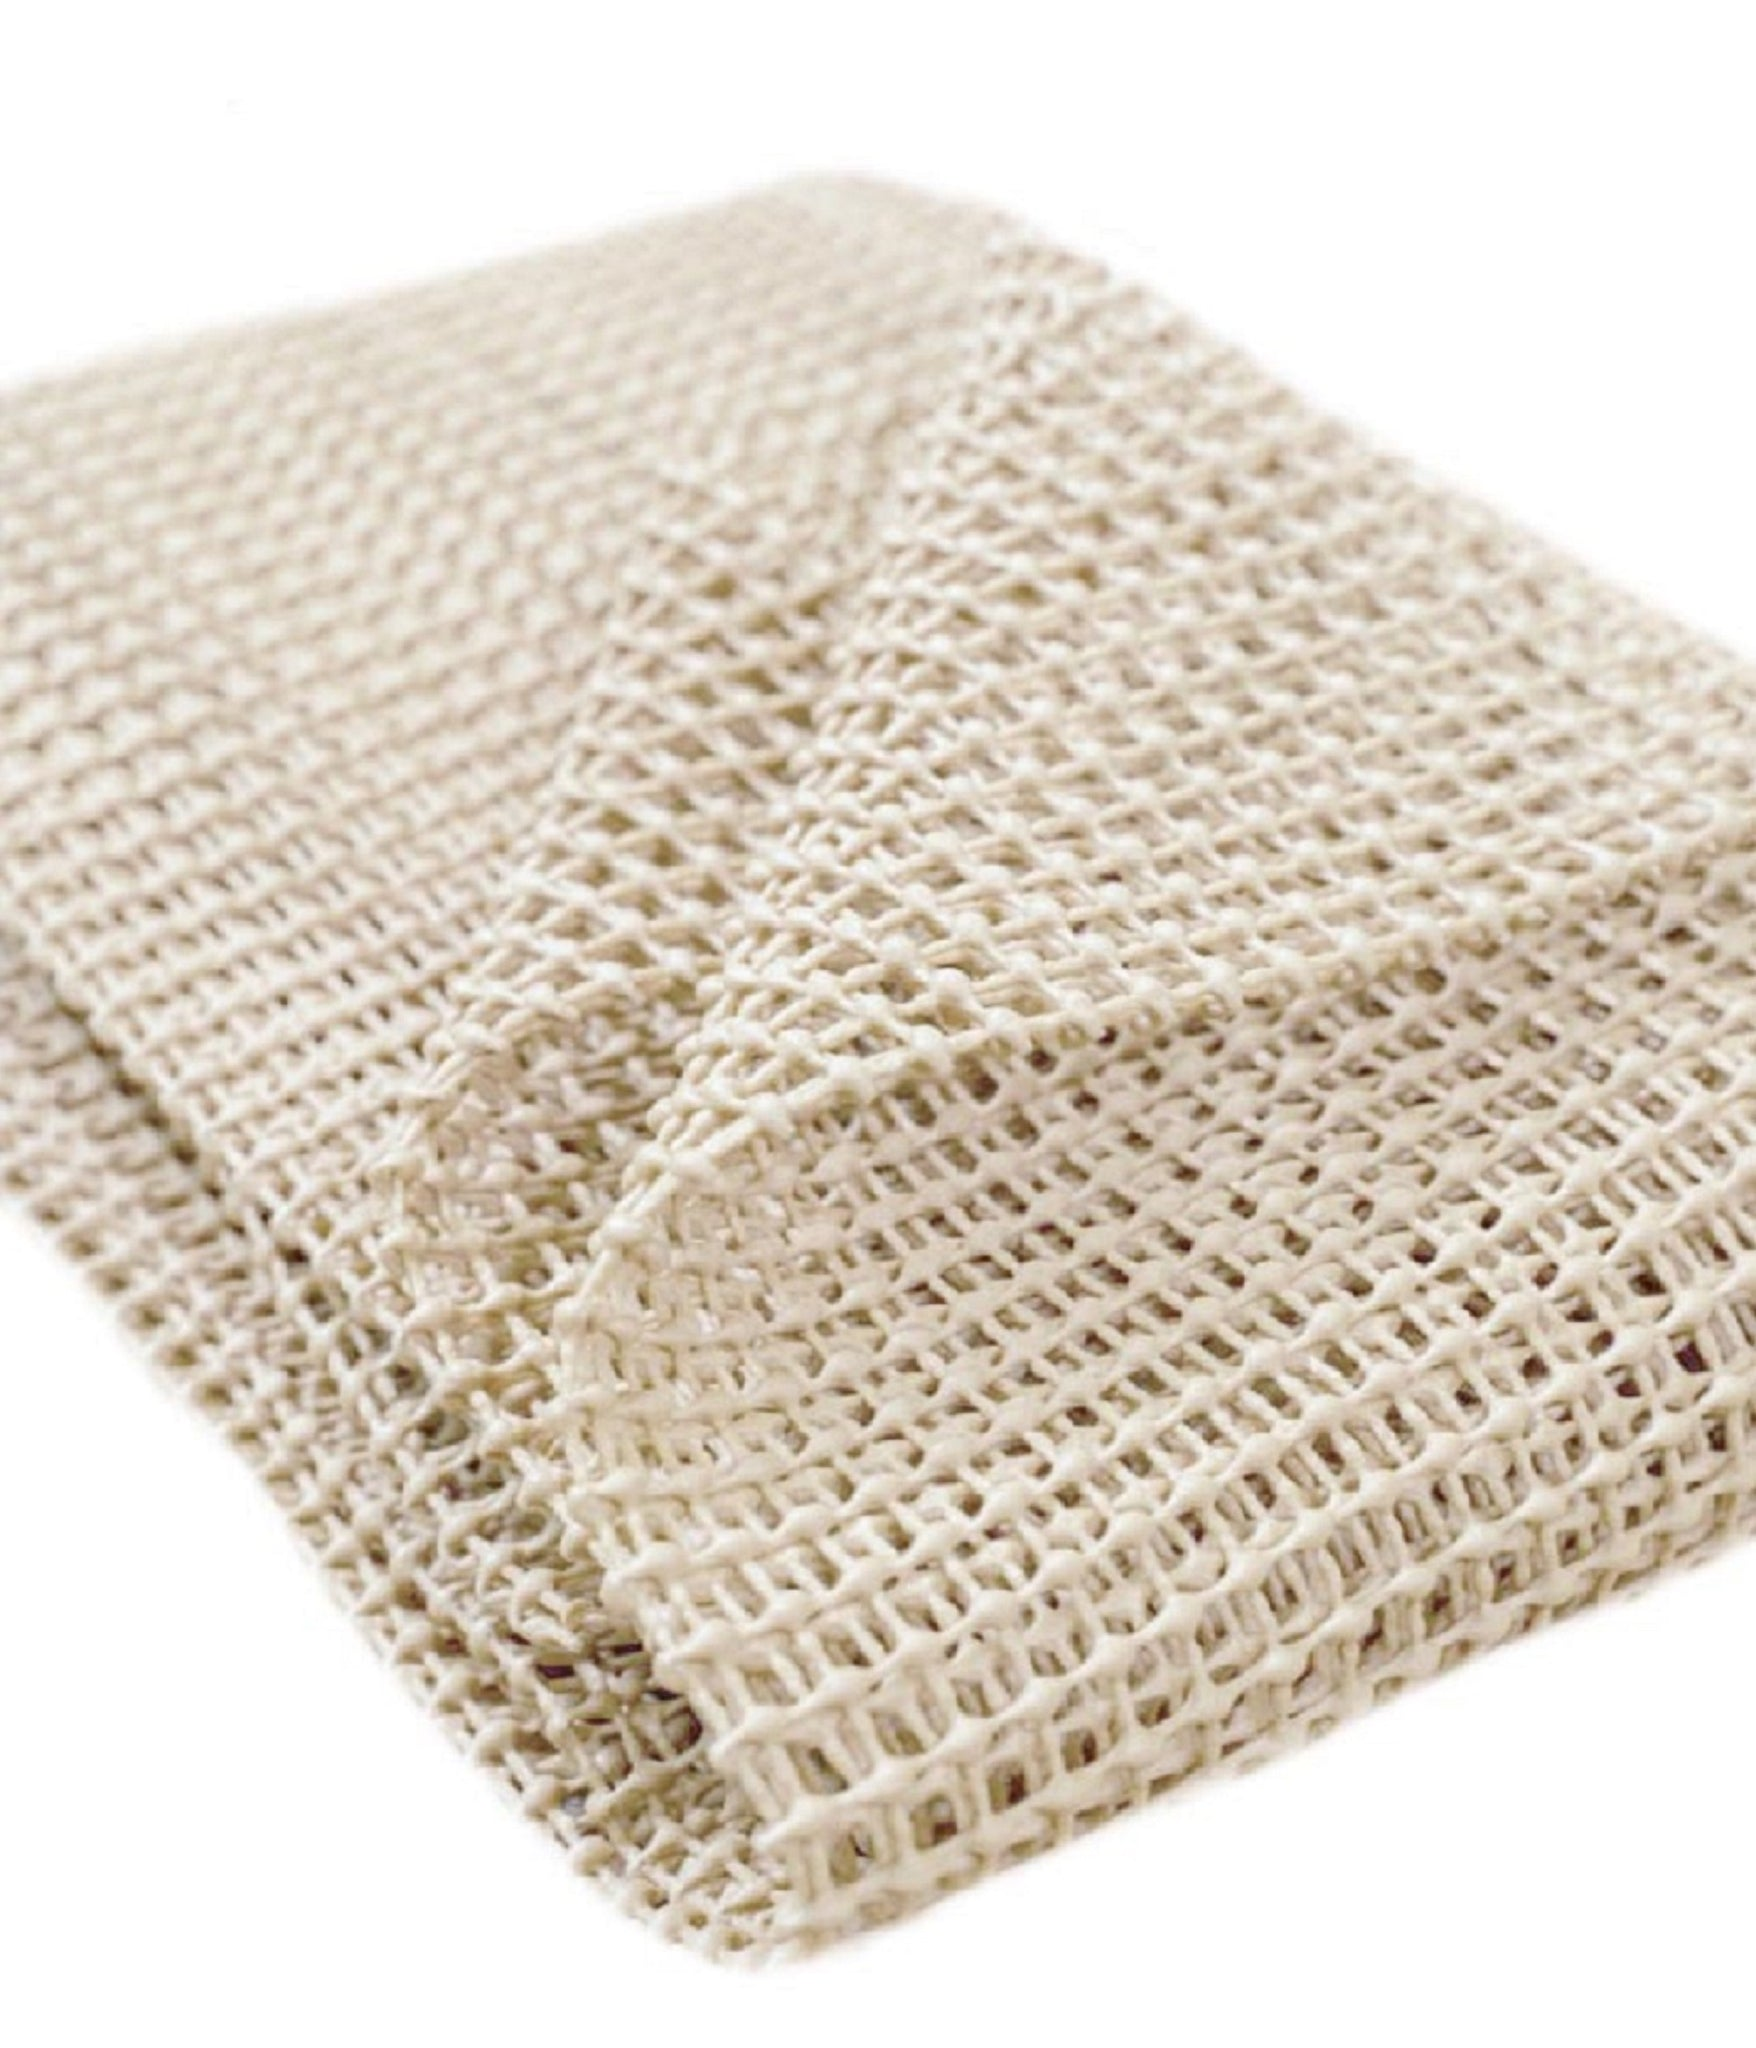 "Strong Grip Non-Slip Rug Pad (0.125"")"